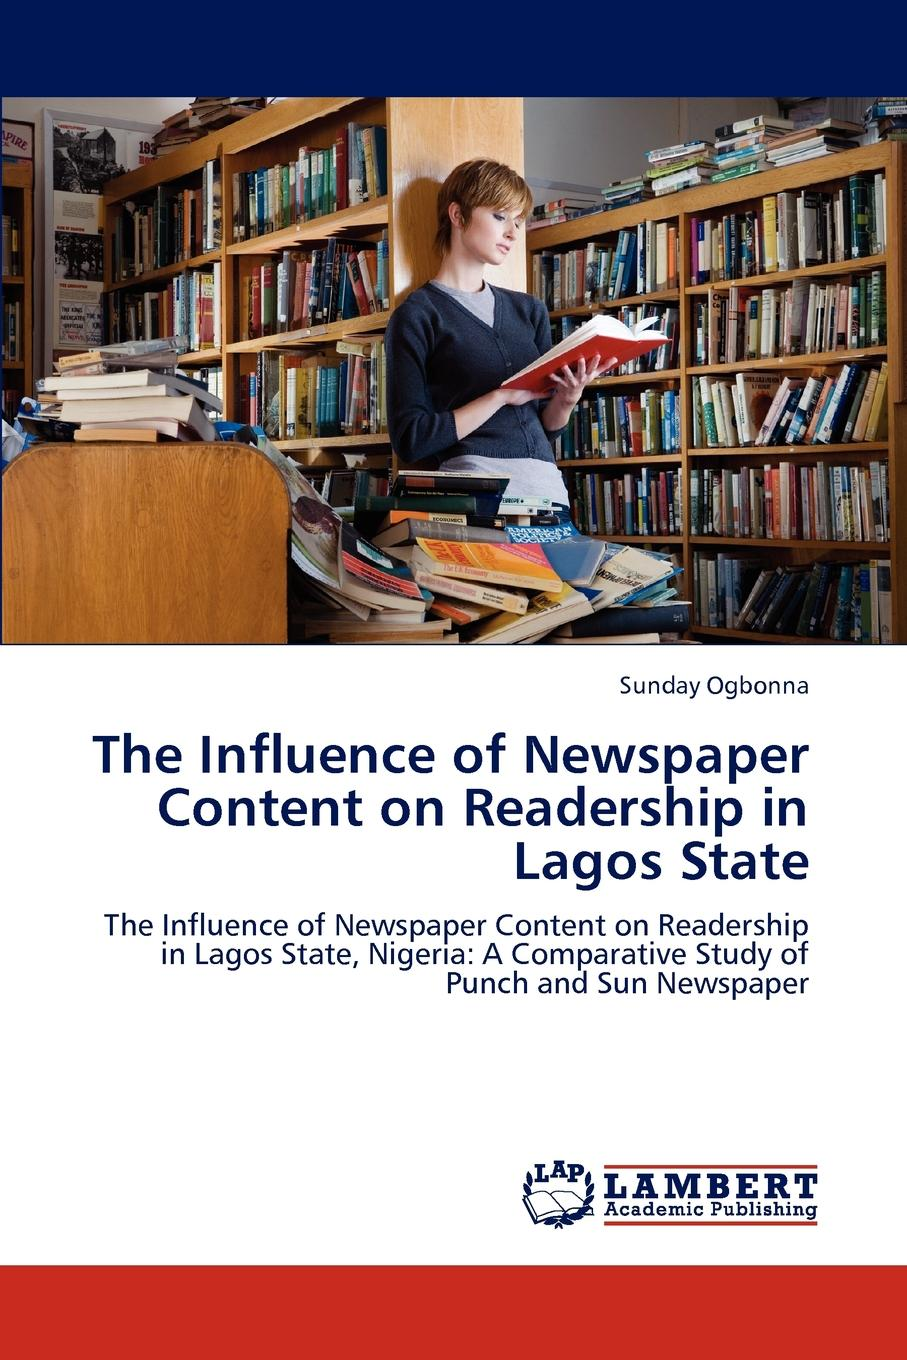 Ogbonna Sunday The Influence of Newspaper Content on Readership in Lagos State and now the news